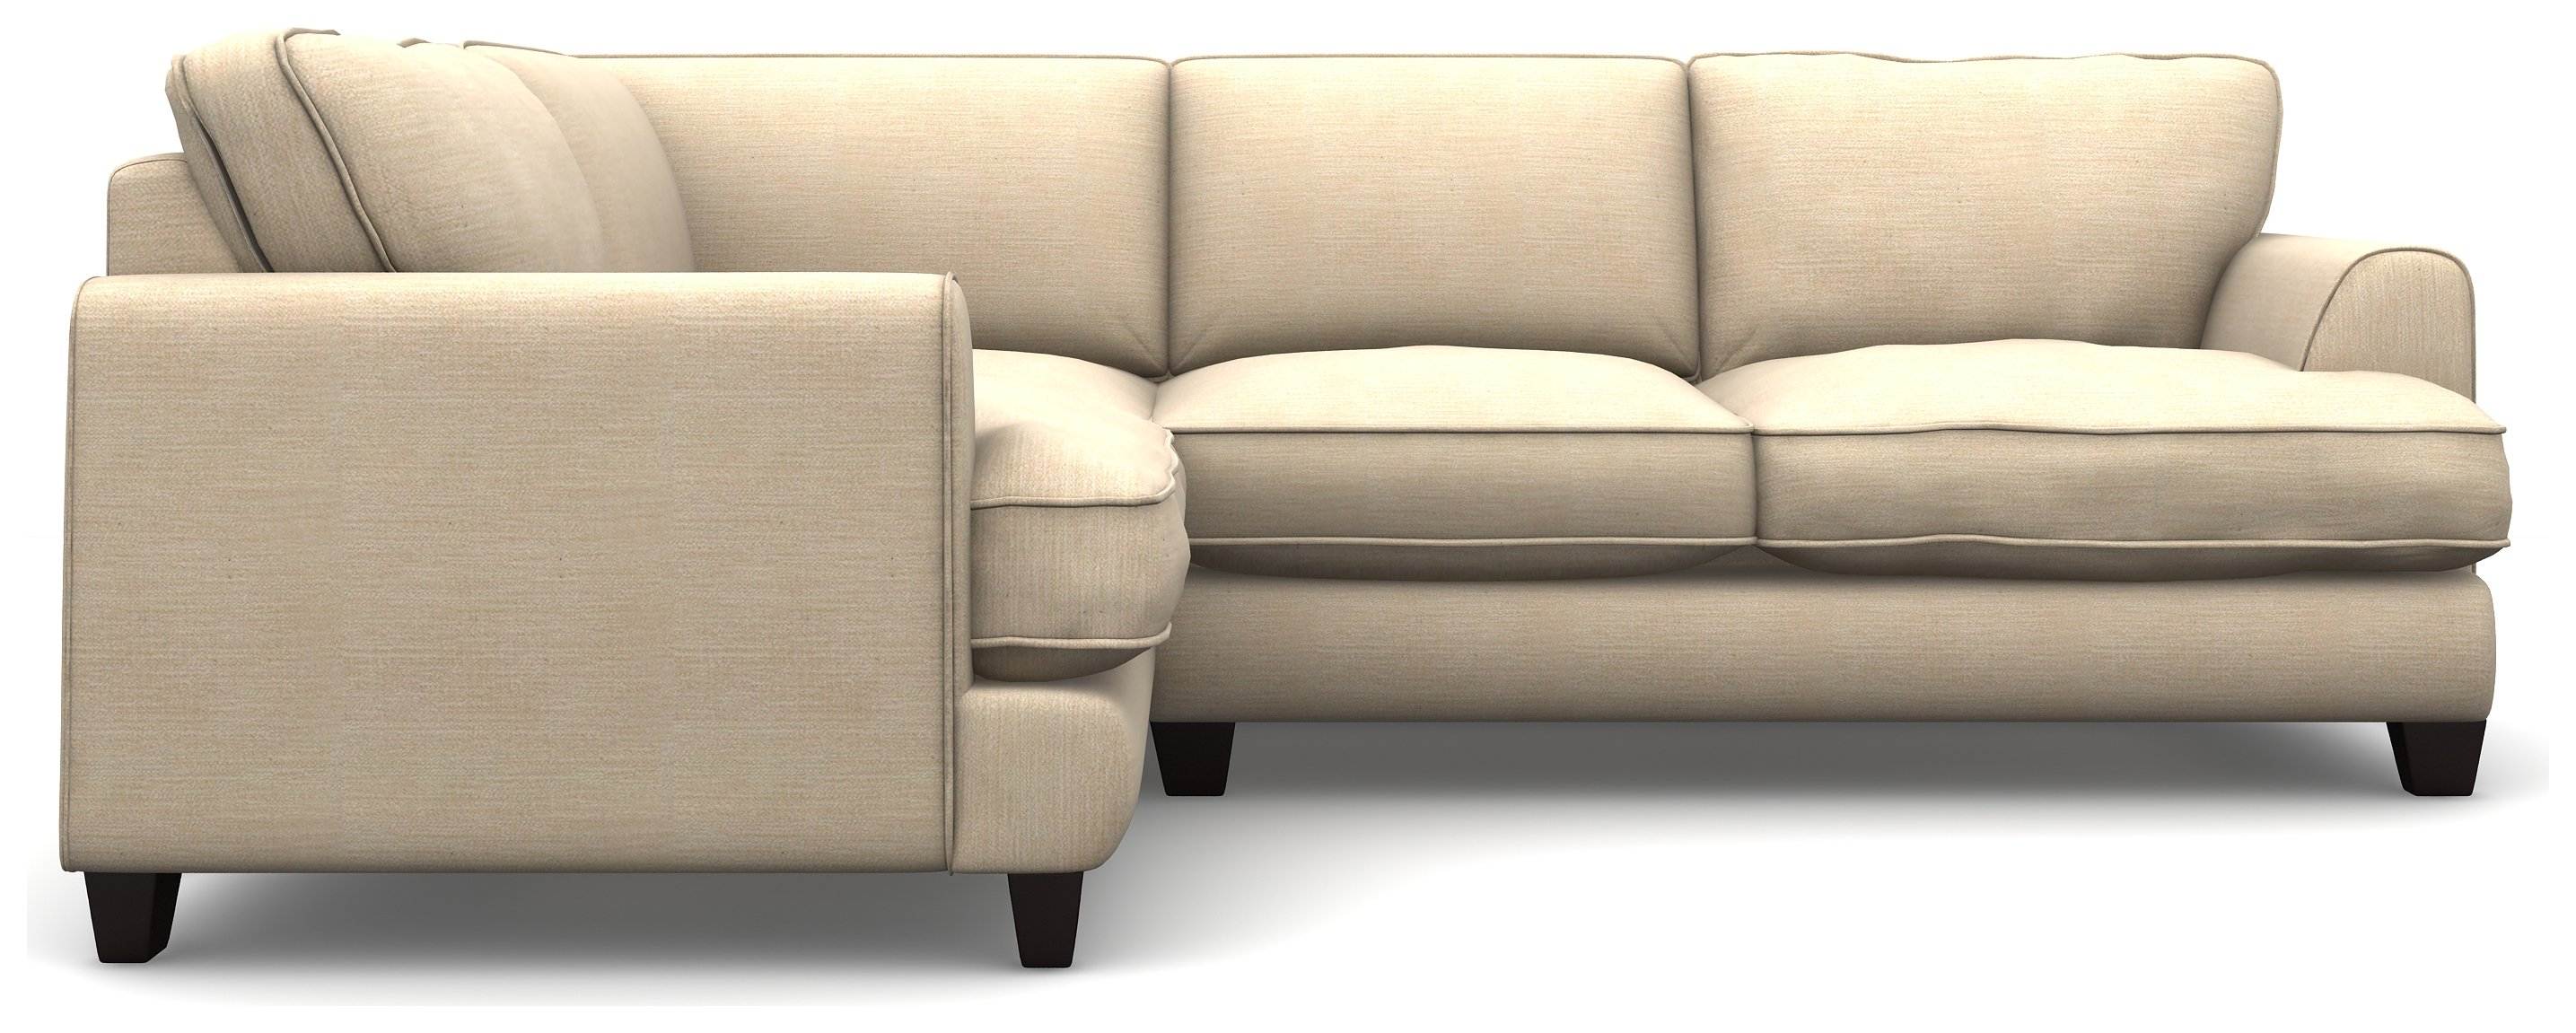 Argos Home Hampstead Left Corner Fabric Sofa - Beige